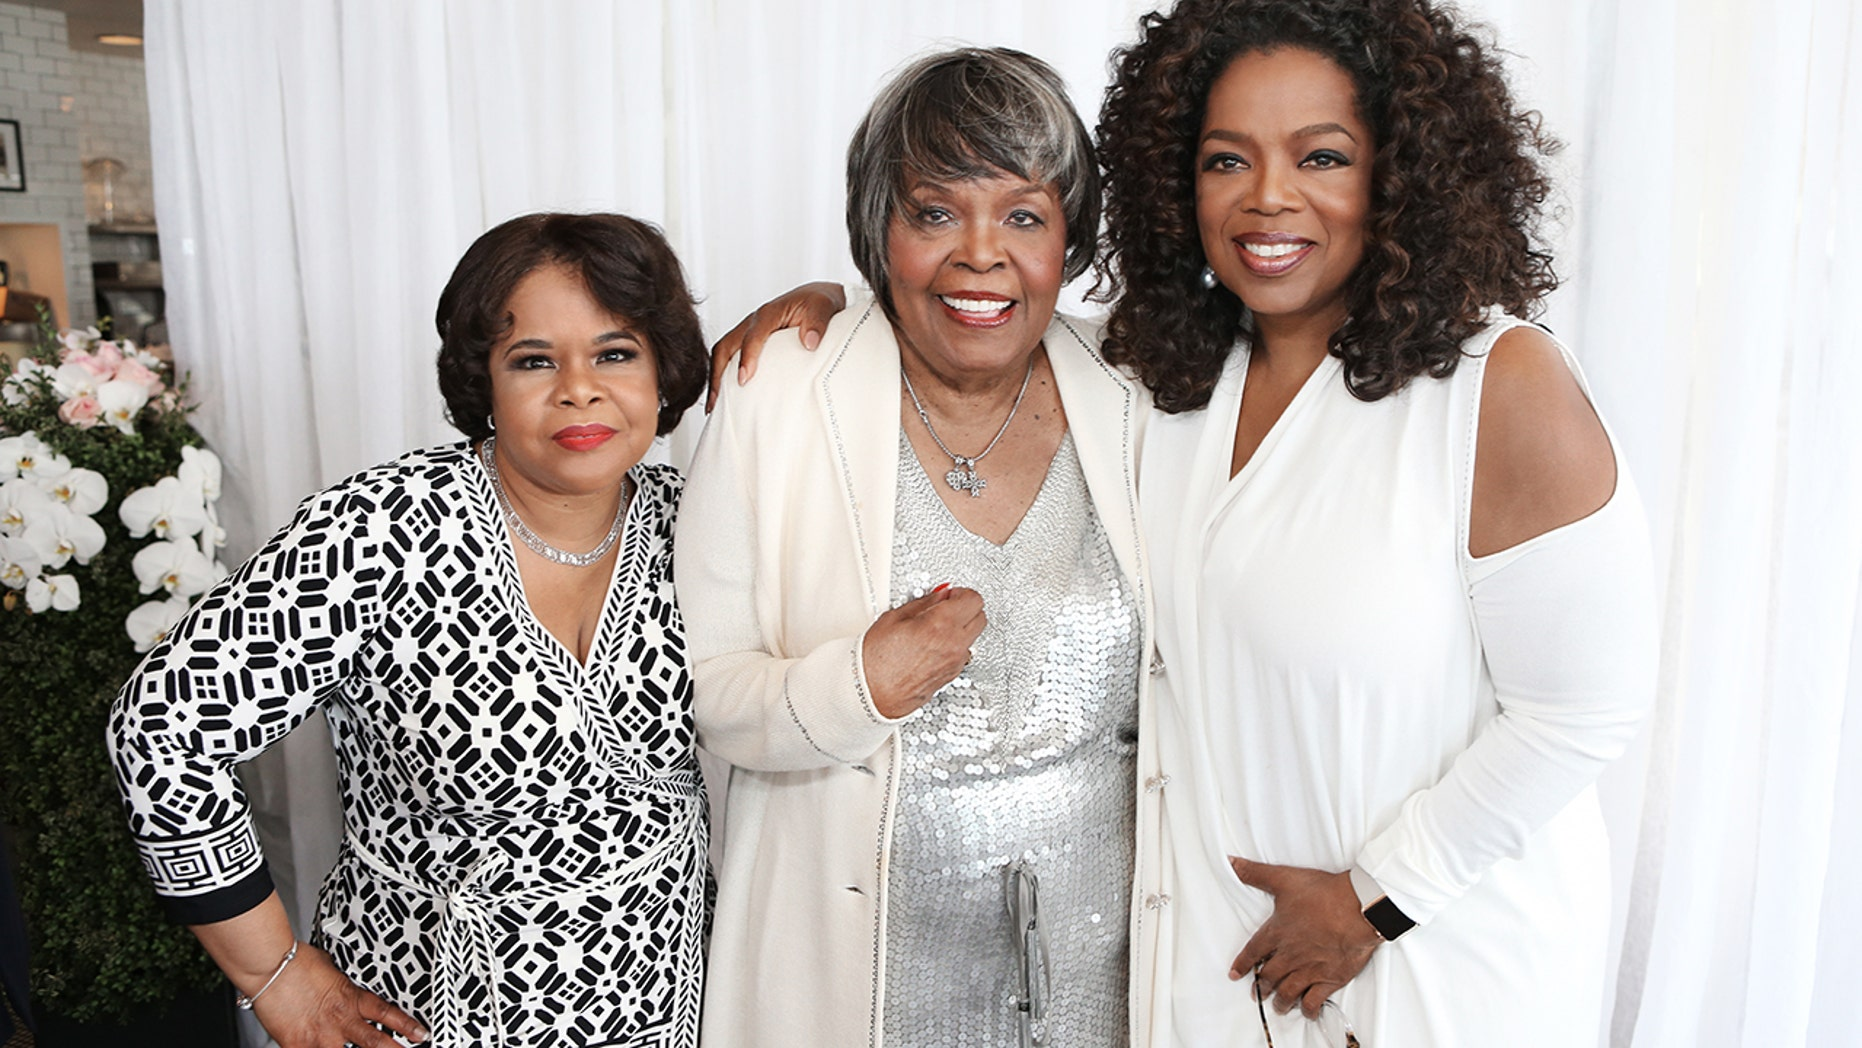 Vernita Lee, center, with her daughters Patricia Amanda Faye Lee, left, and Oprah Winfrey, right, at Vernita's 80th birthday party.